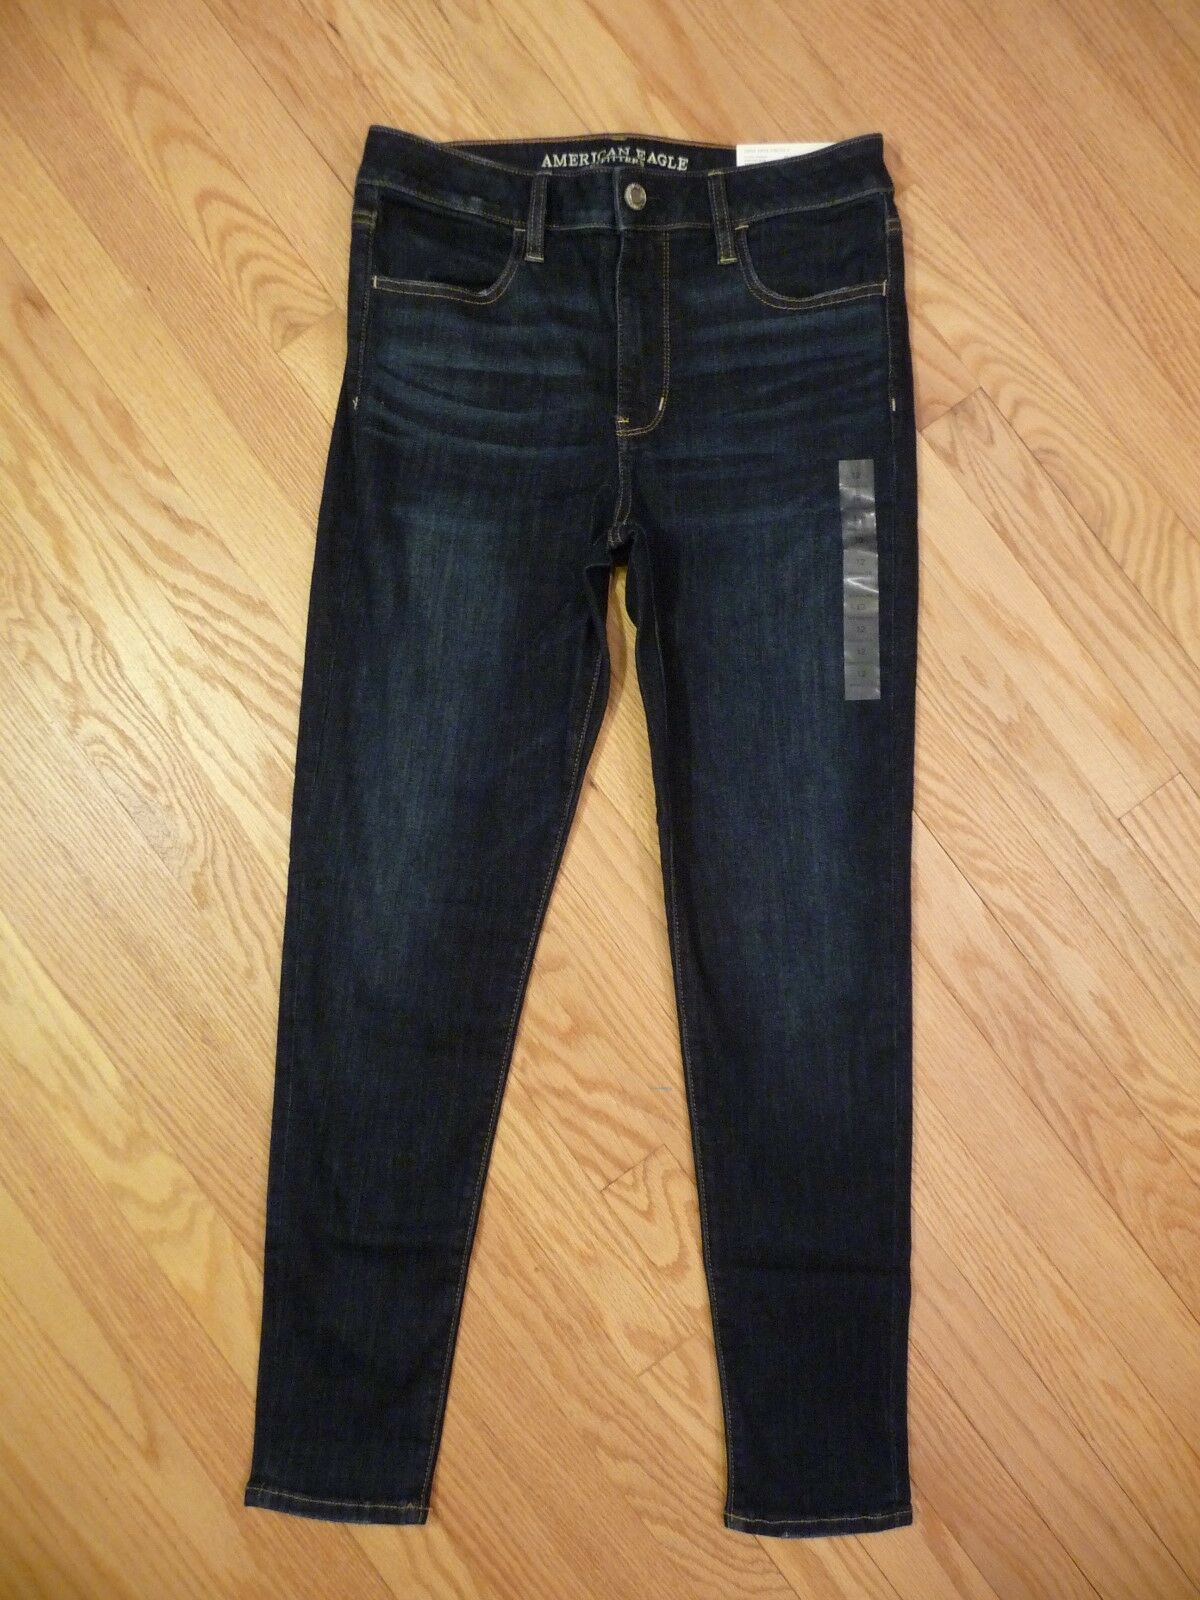 Womens NEW AE American Eagle Hi-Rise Jegging Super Stretch Dark Denim Jeans 12 R